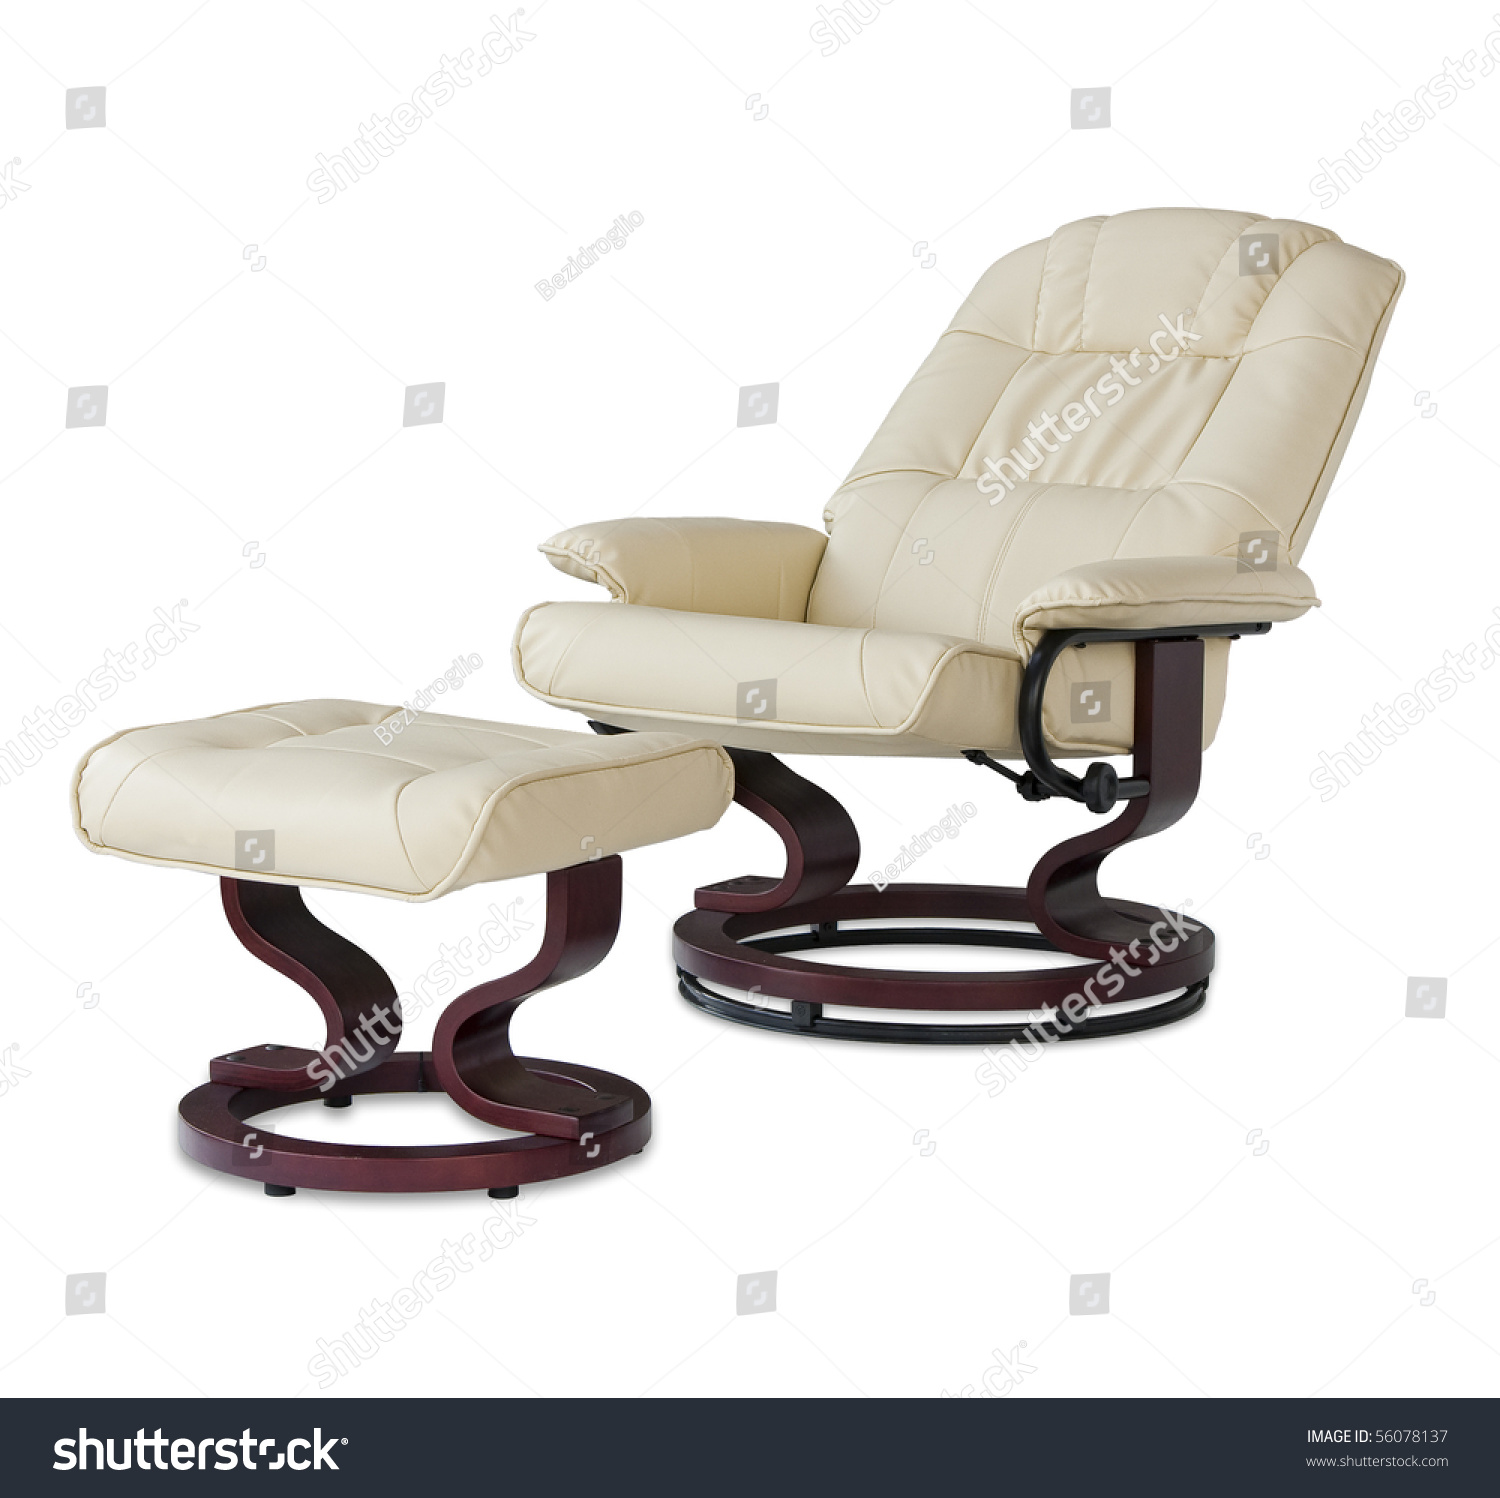 swivel chair definition patio with nesting ottoman canada reclining leather massage foot rest in beige